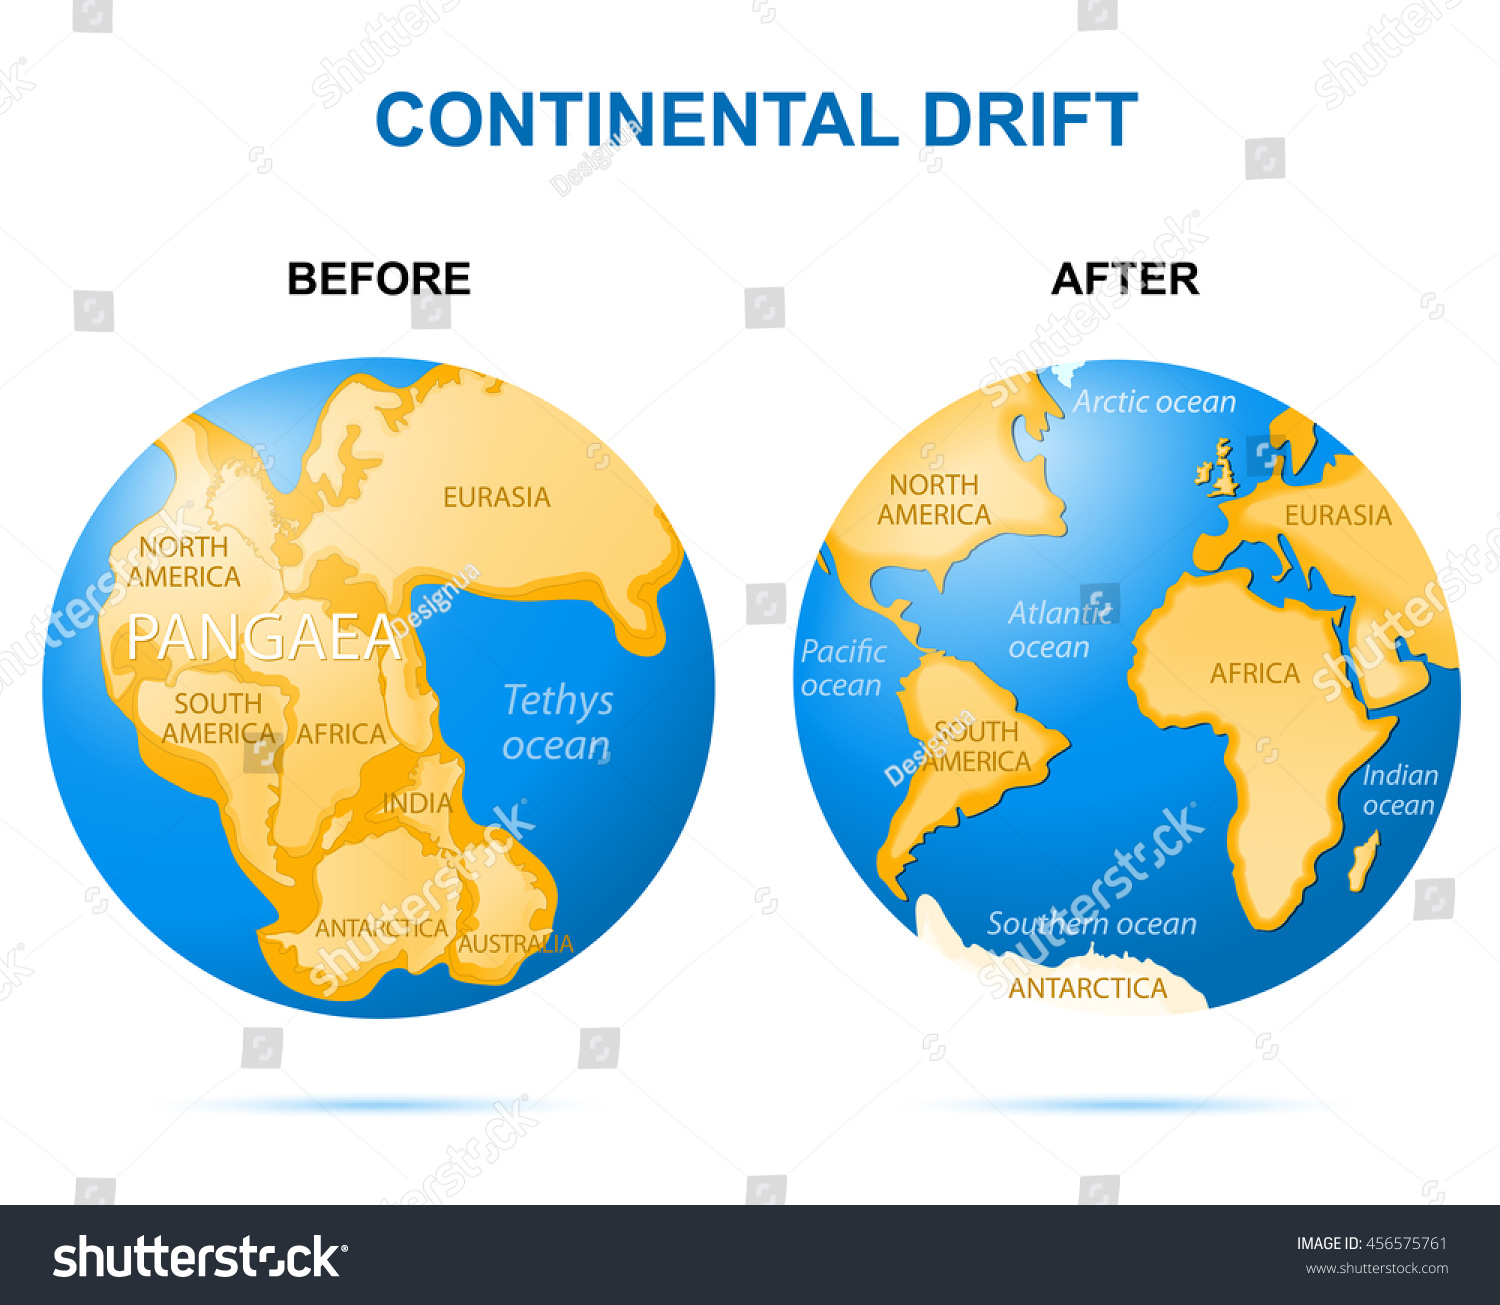 Image result for continental drift